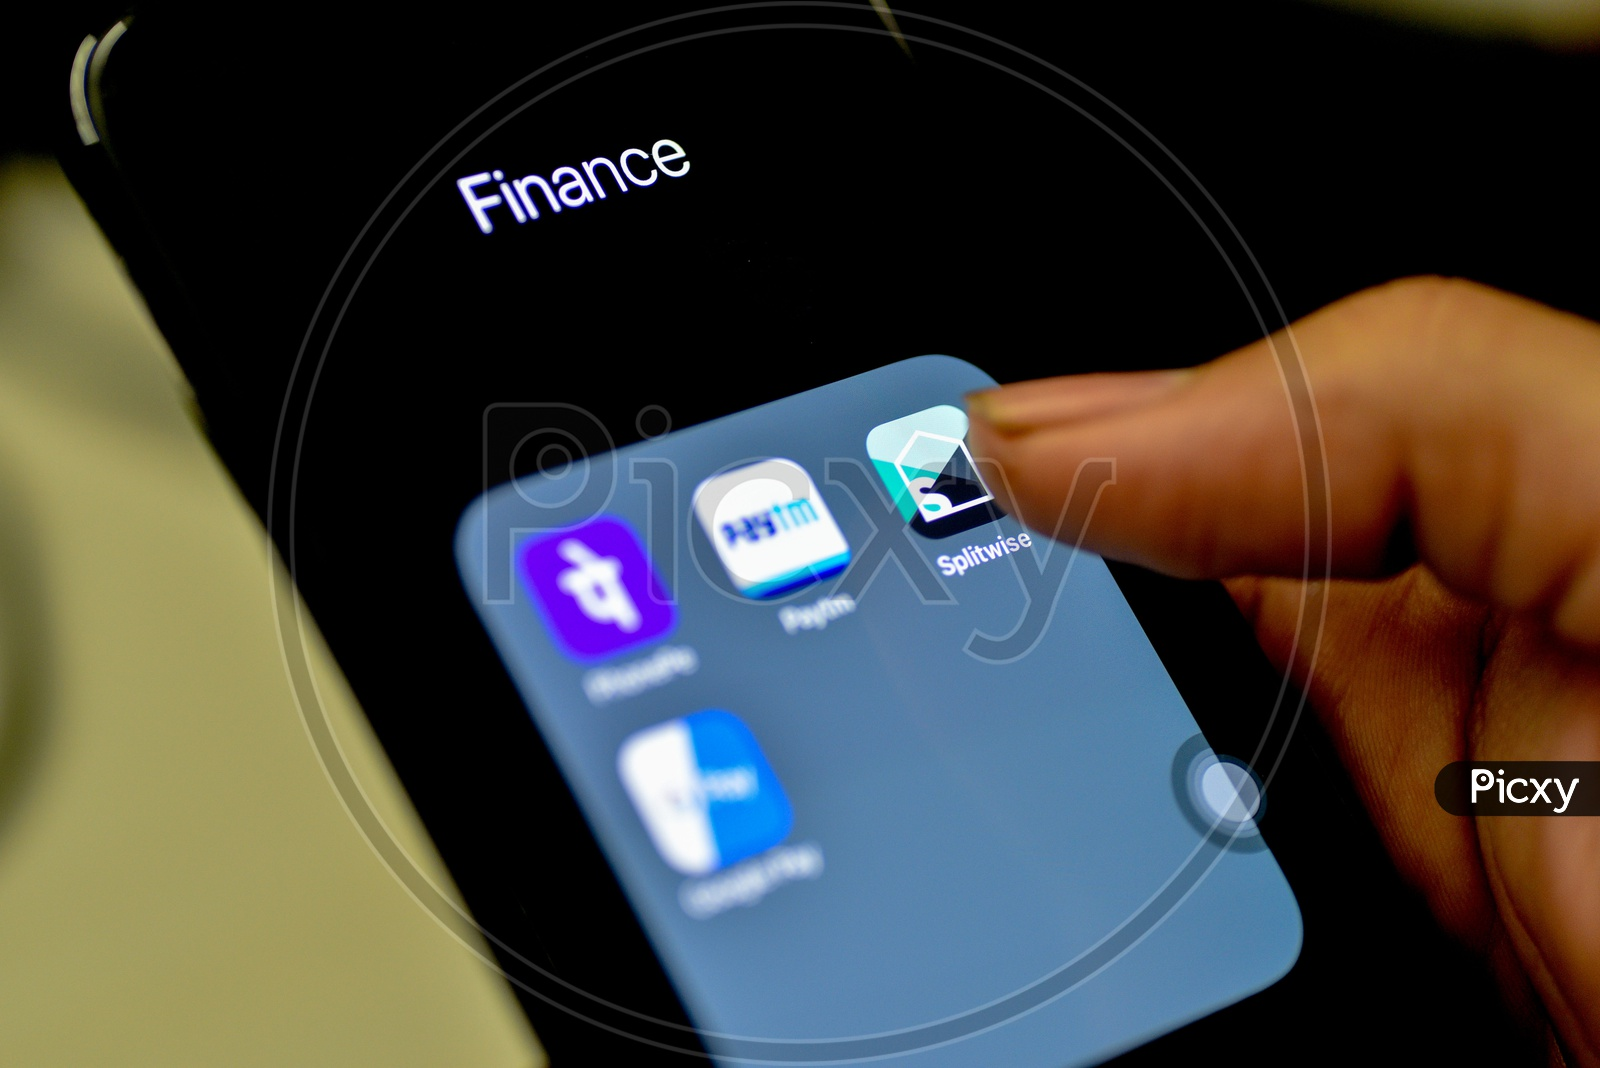 Online Payment Apps Of Upi ,Bhim Or Wallet Installed Icons On Smartphone Screen Closeup  With Finger On Splitwise  App